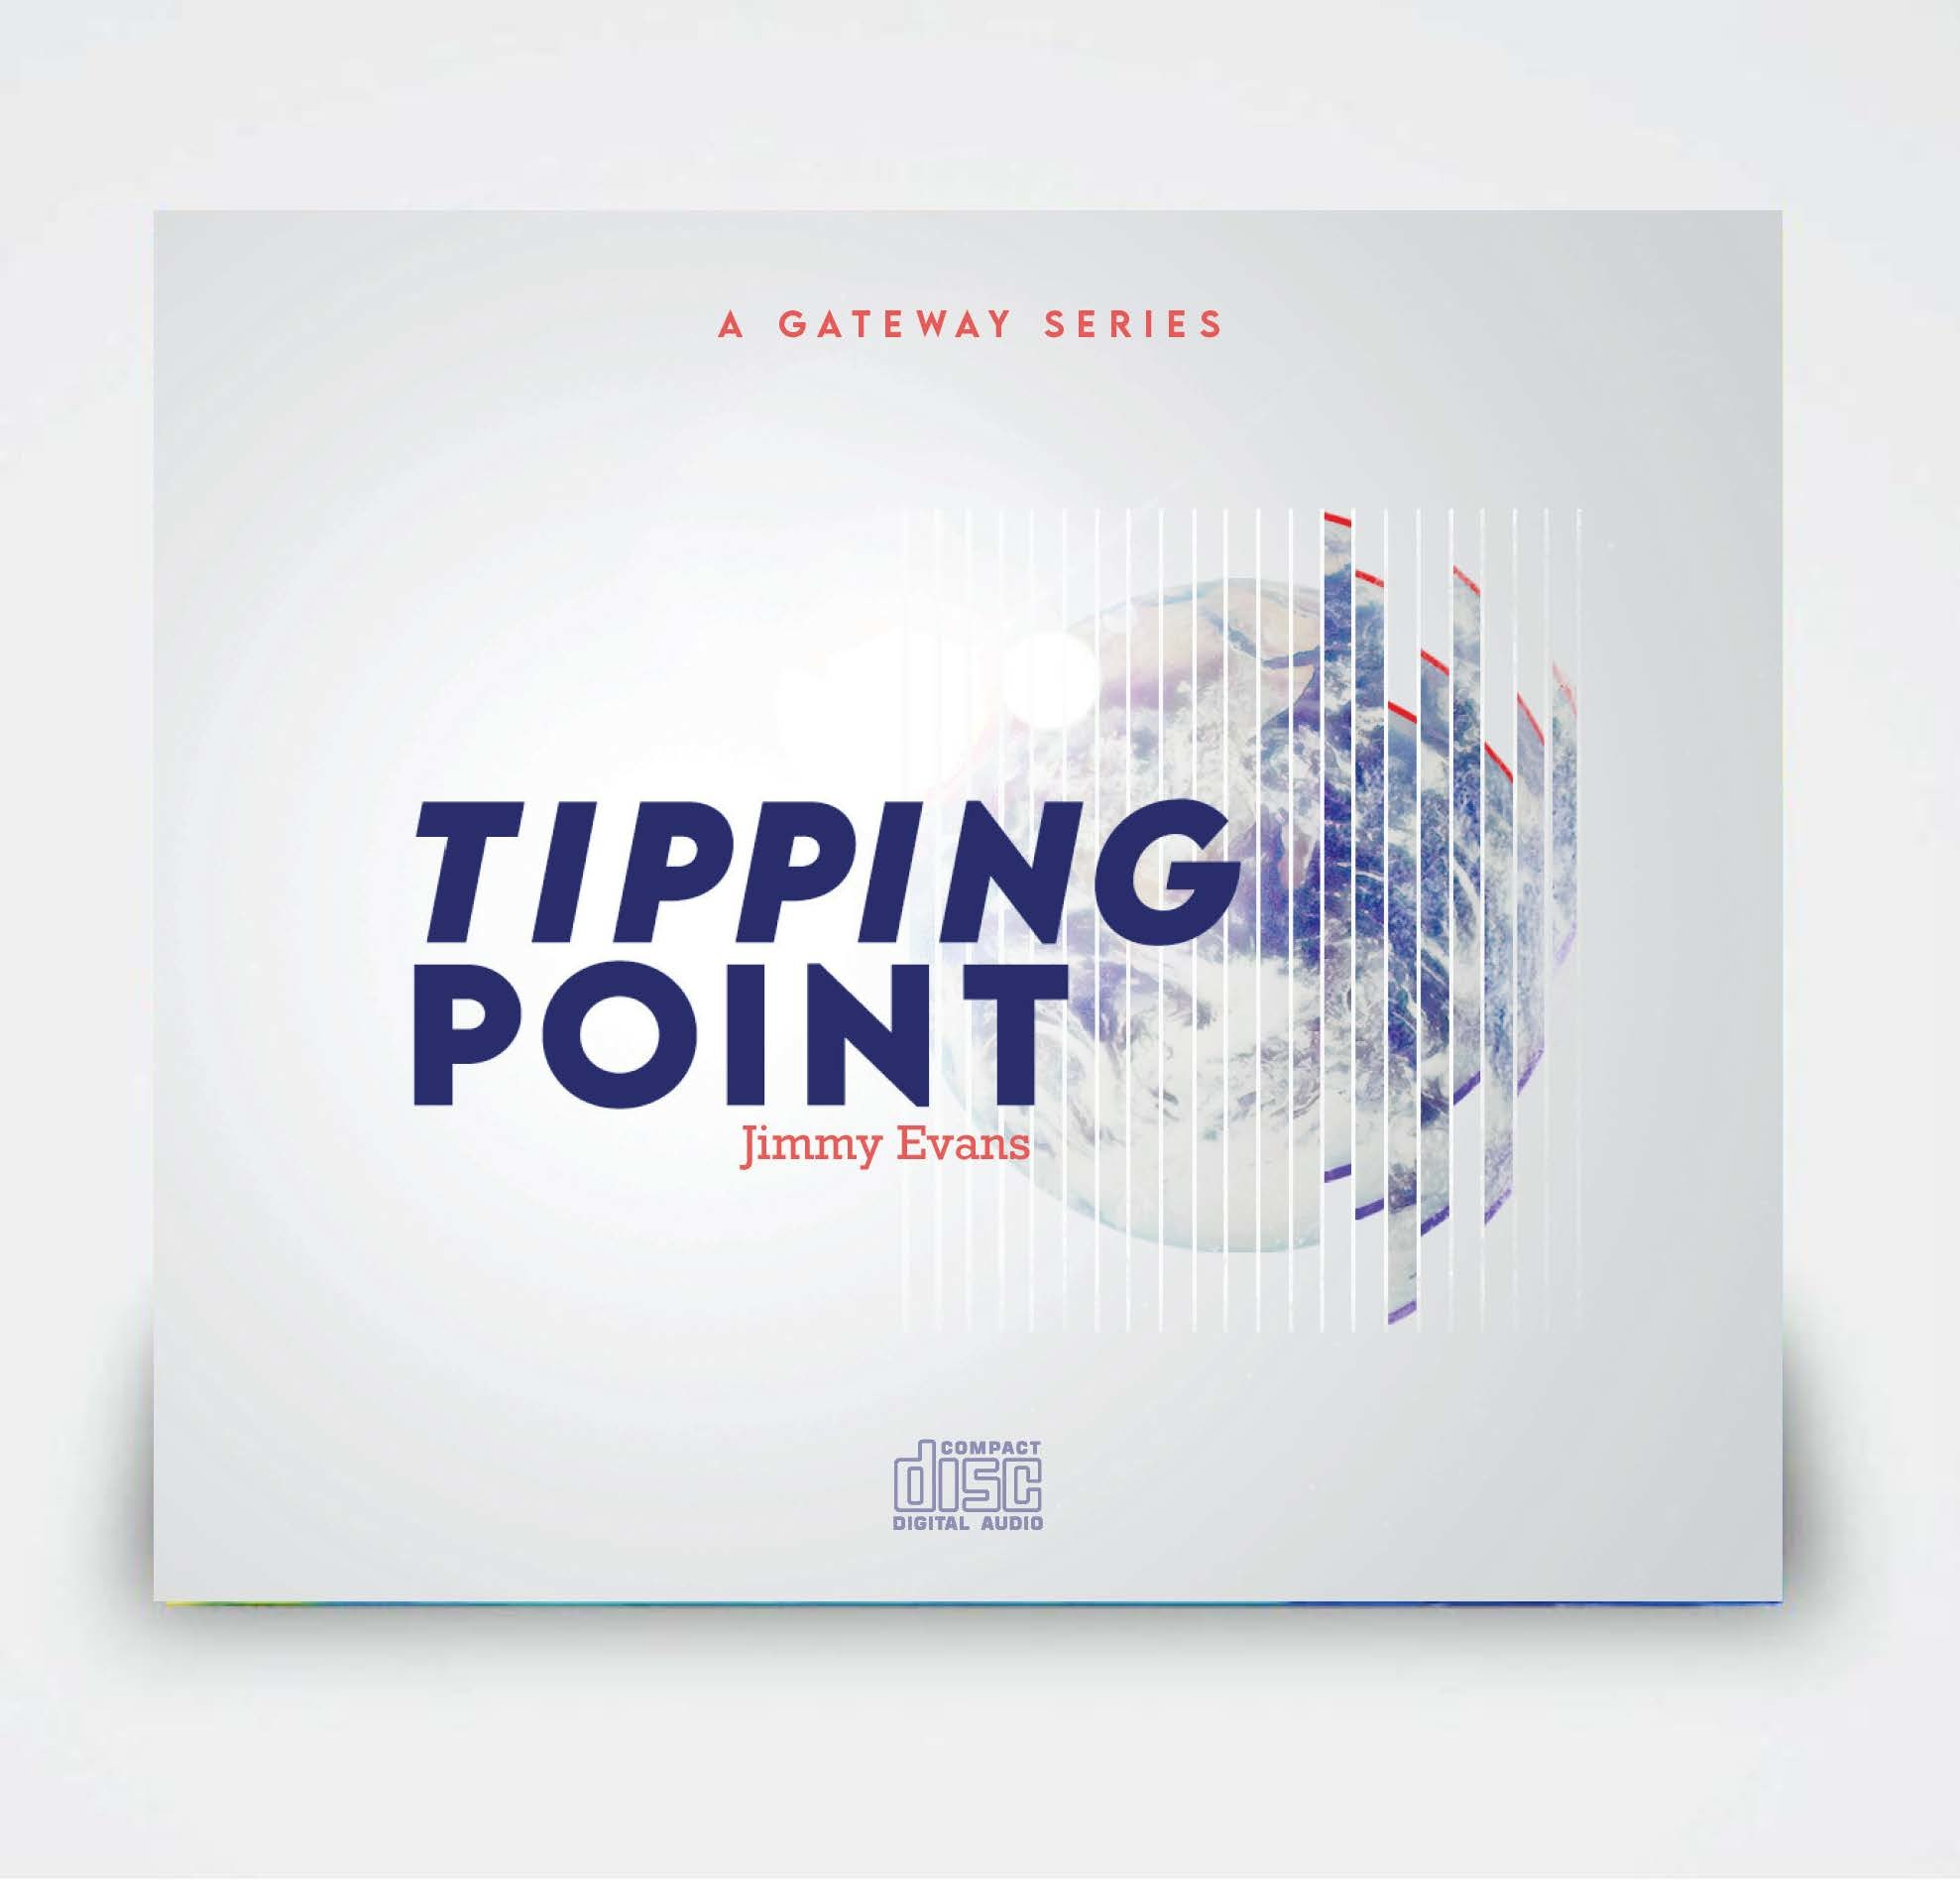 Tipping Point 2020 CDs